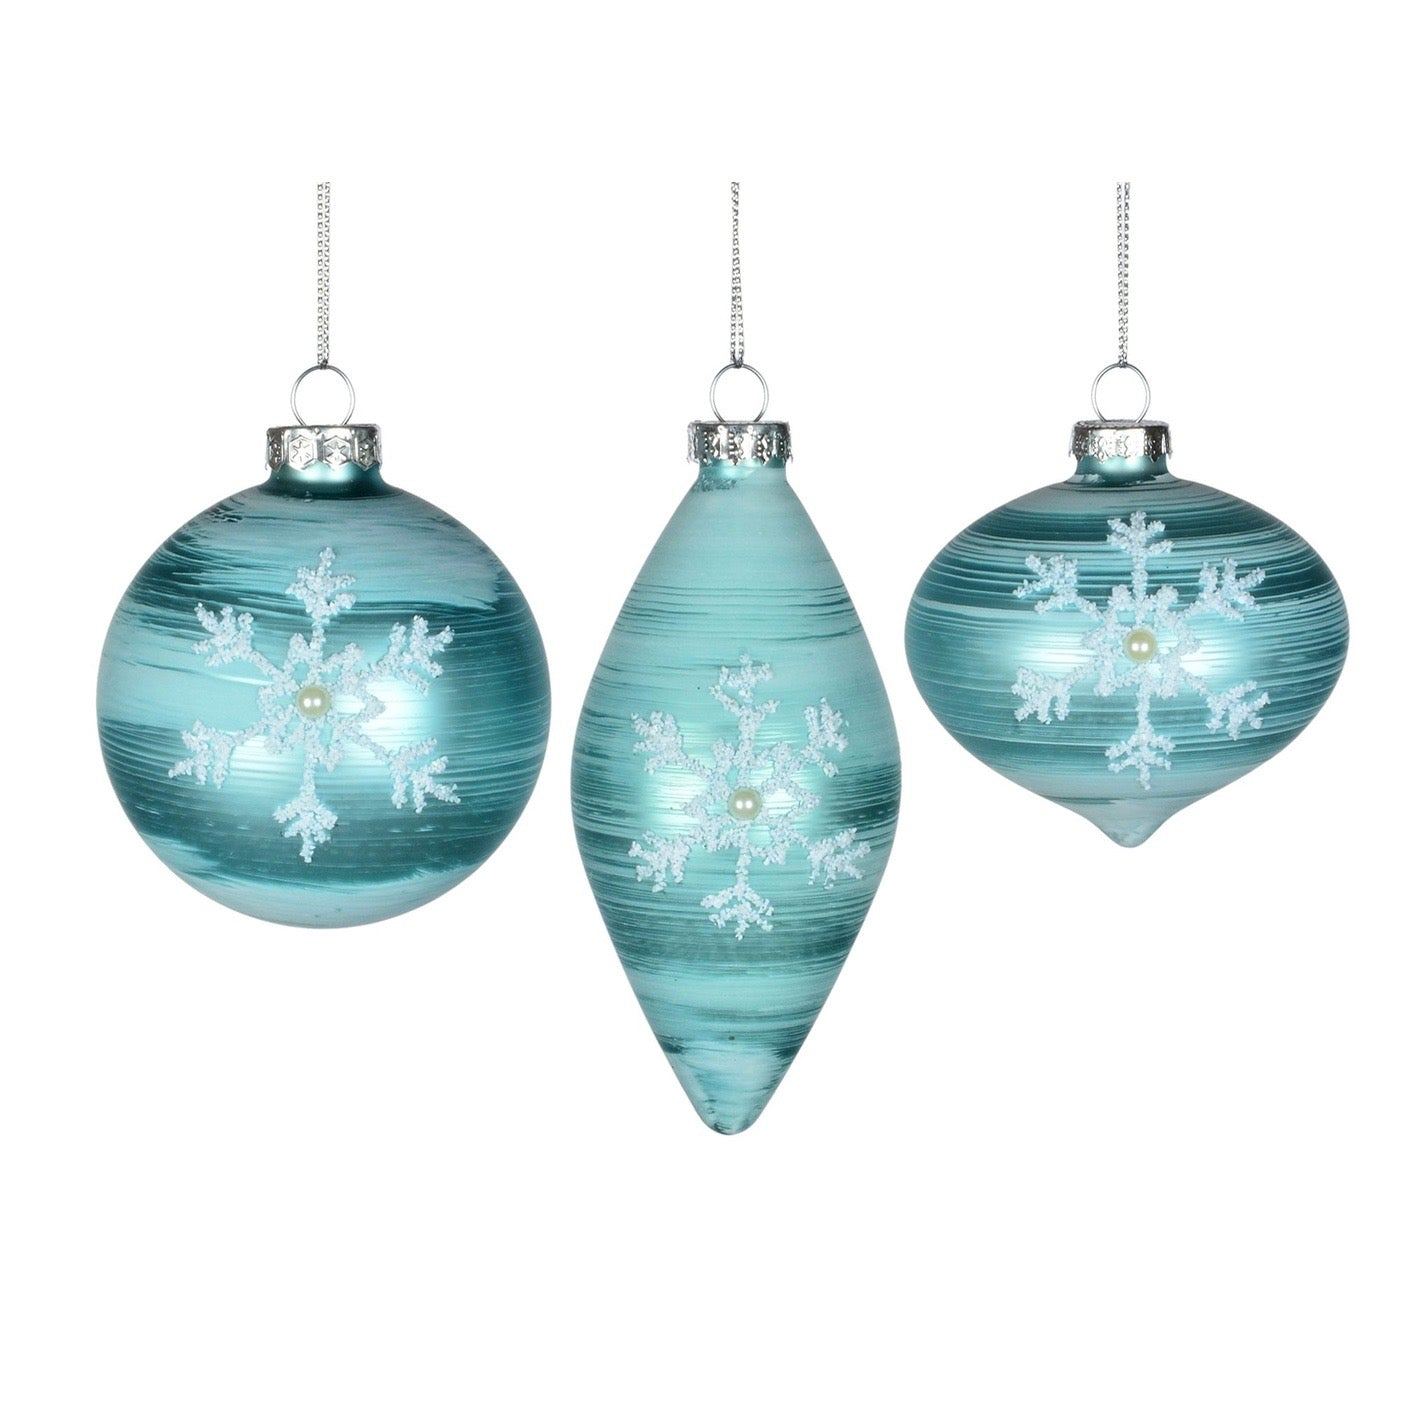 Aqua Glass Christmas Ornament with Snowflakes & Pearls